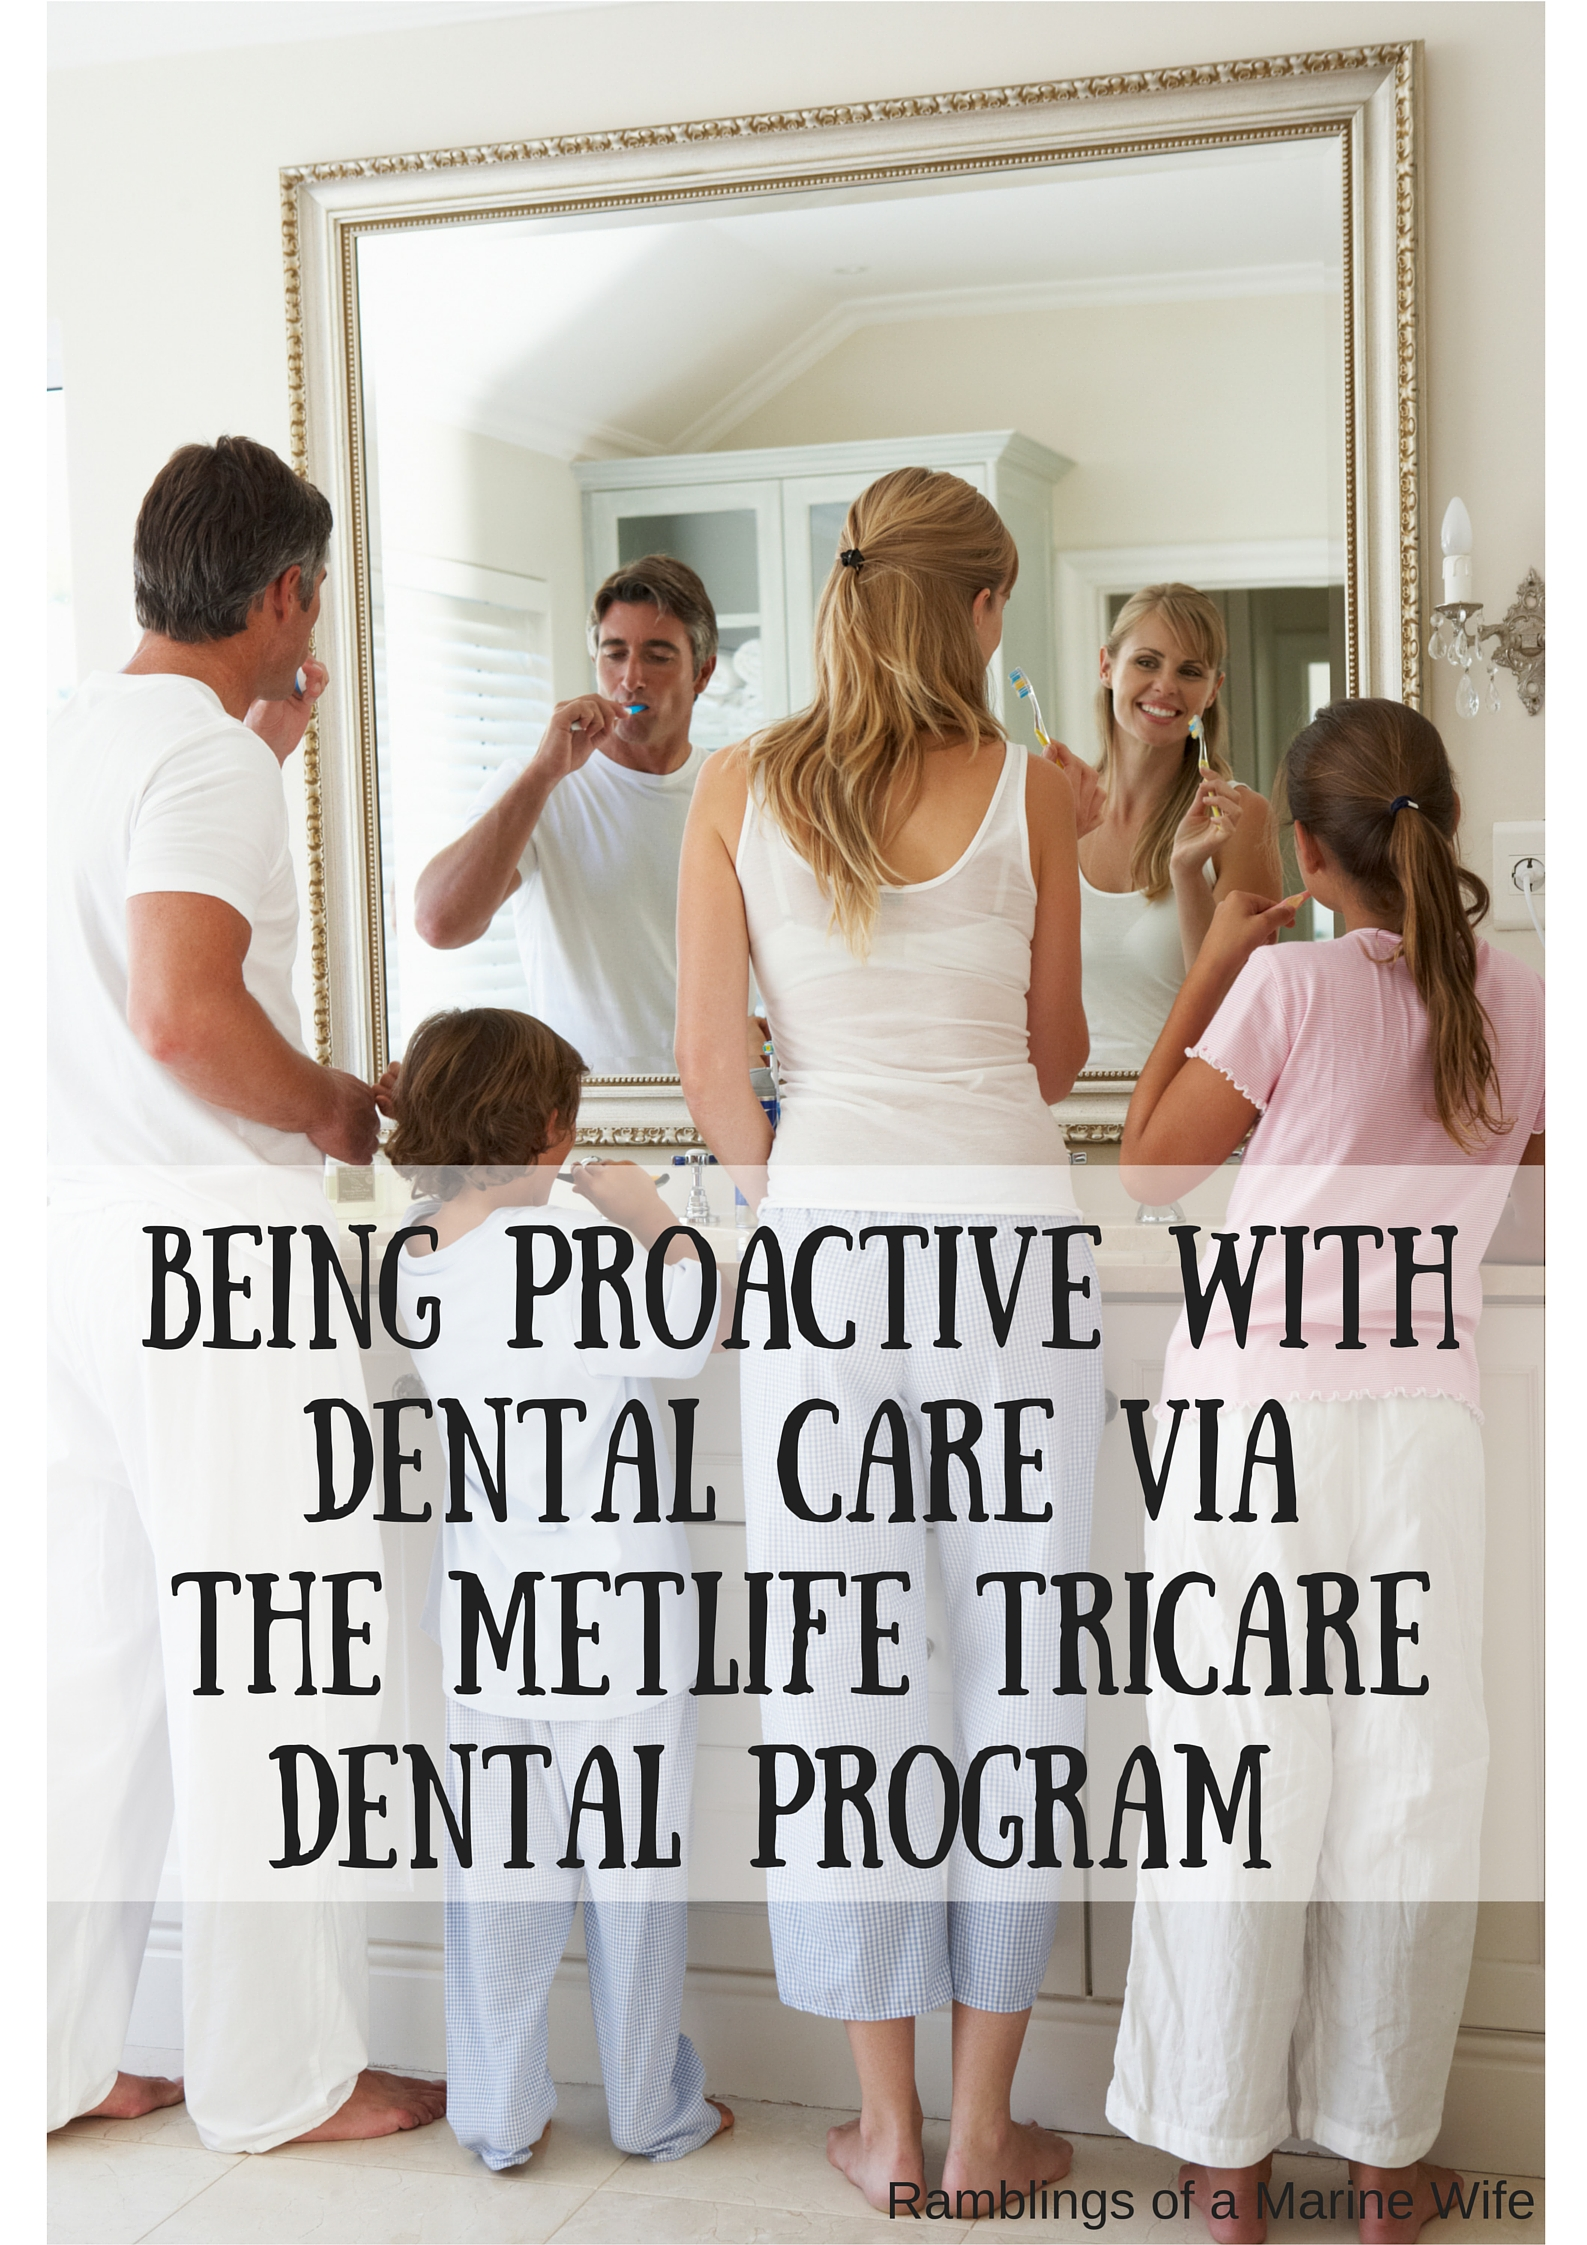 Being Proactive With Dental Care Via The Metlife TriCare Dental